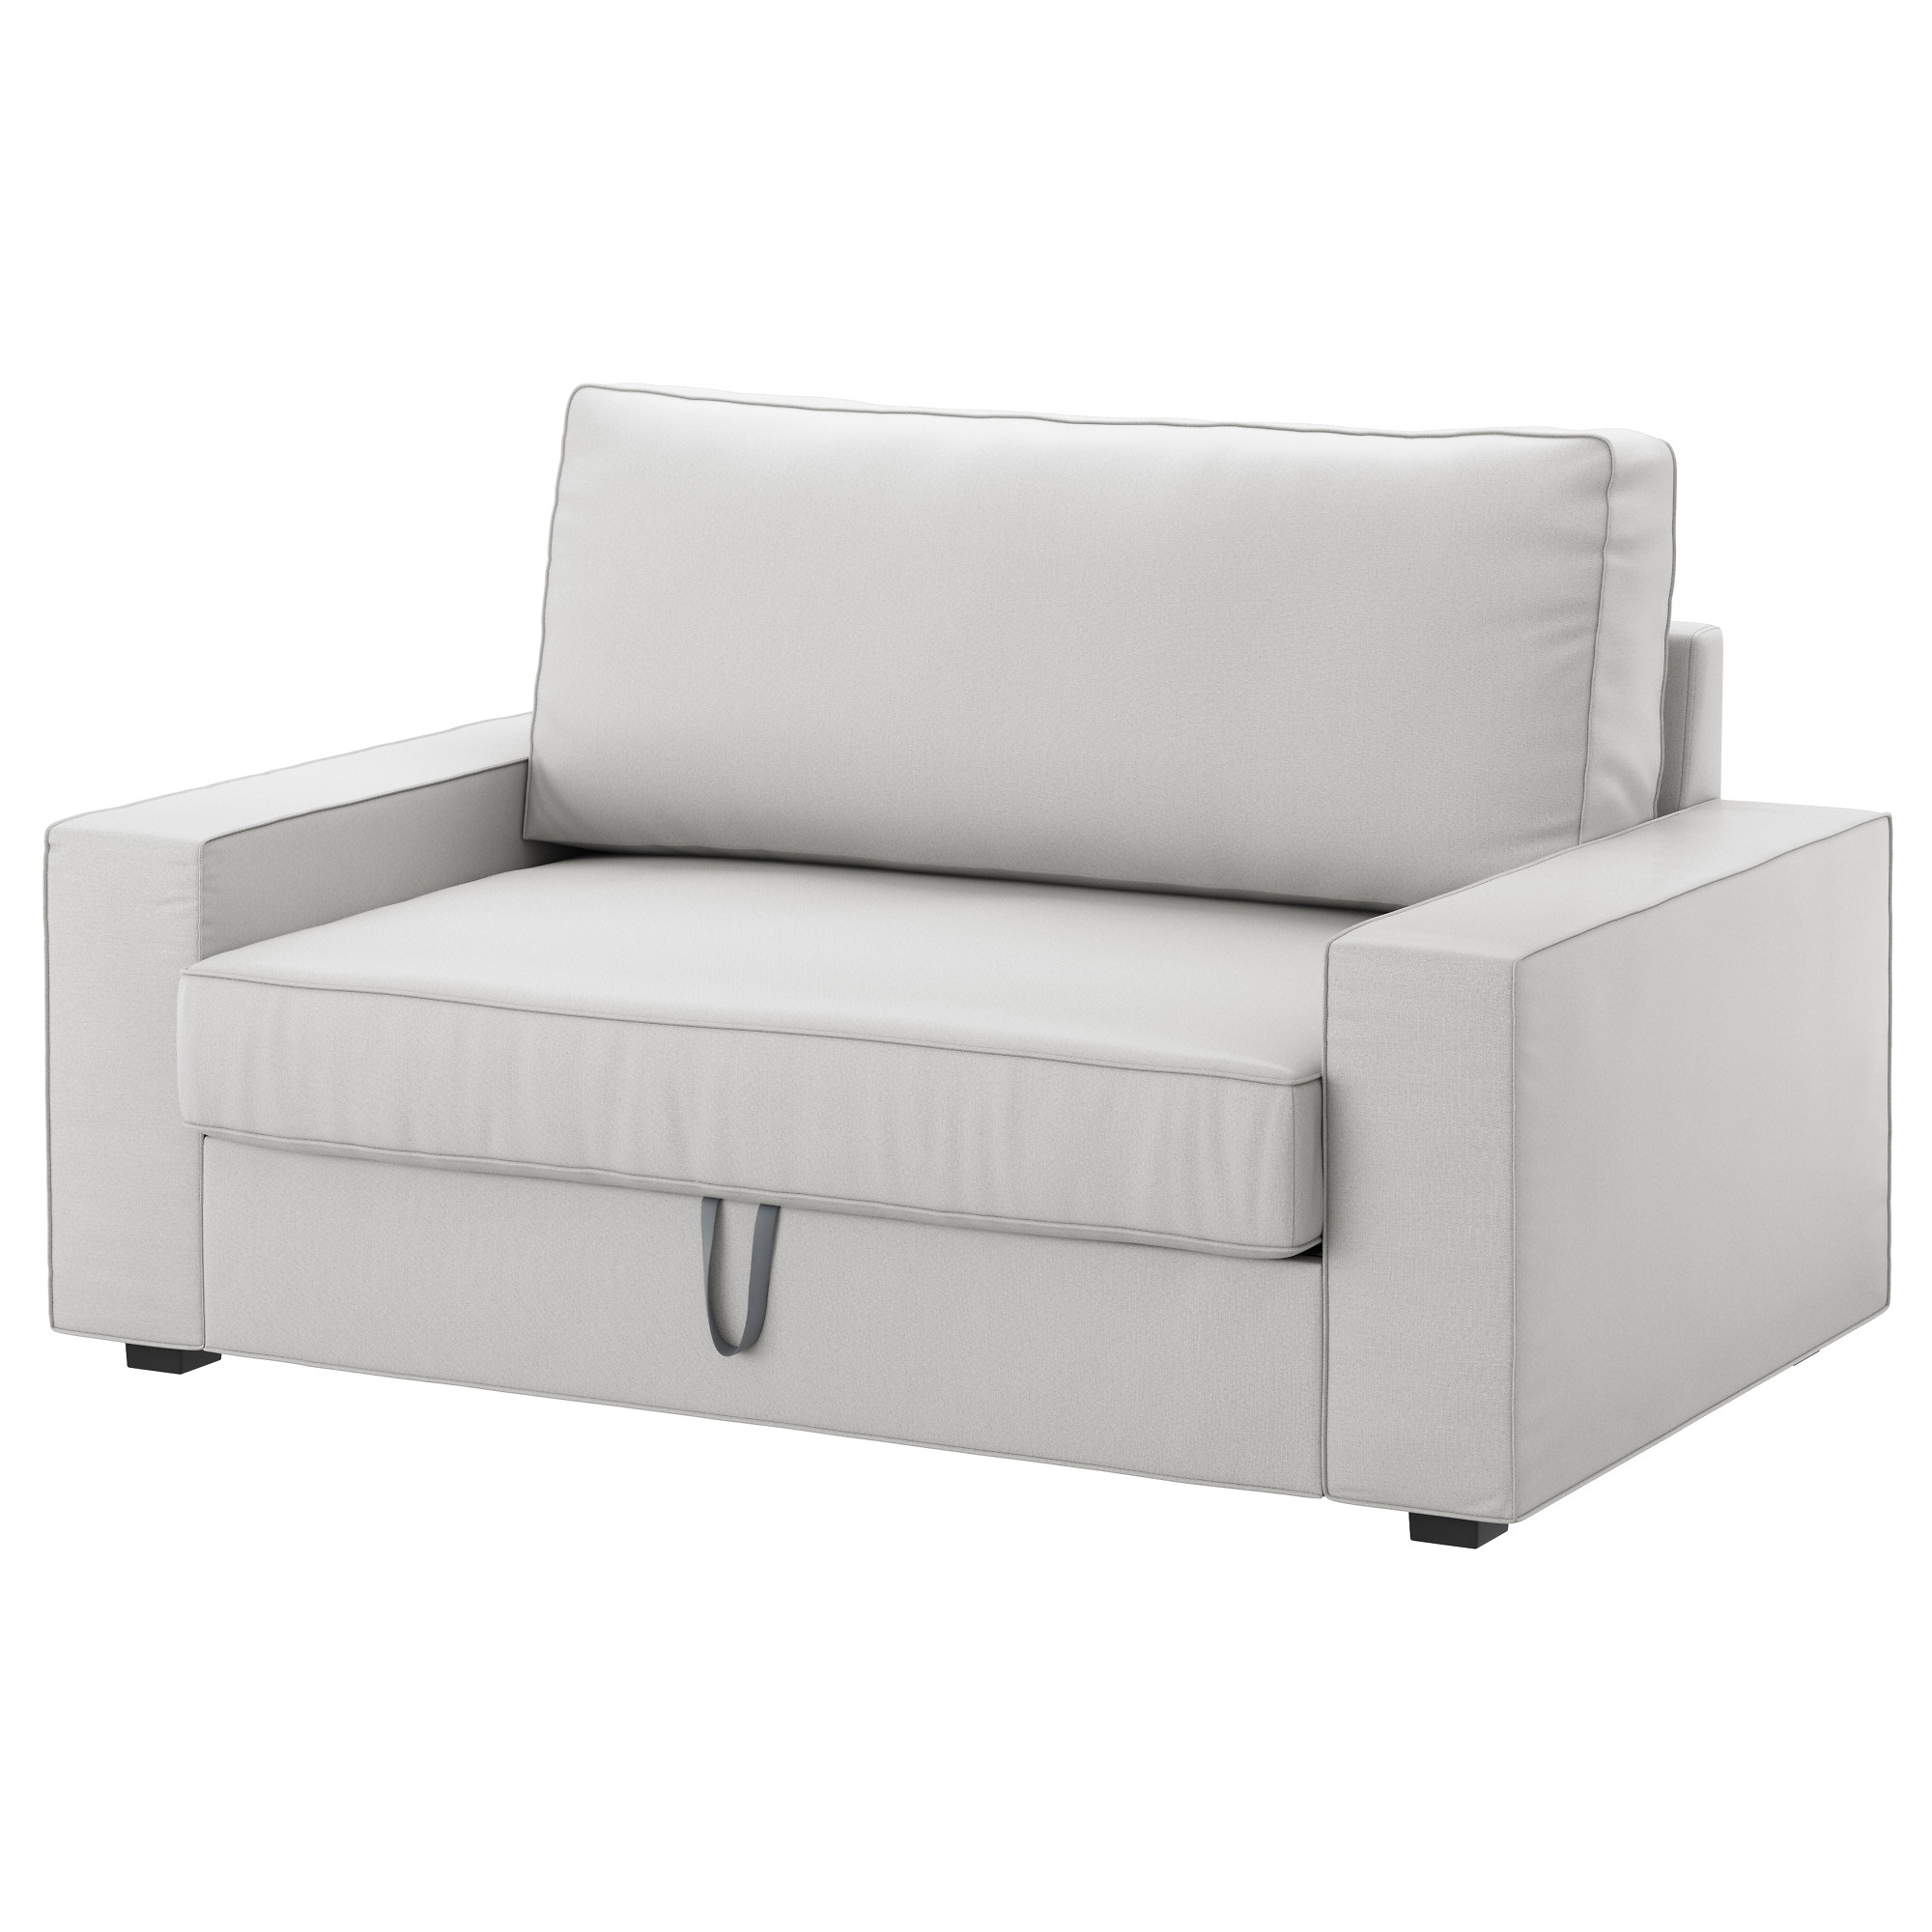 Ikea Sofa Bed 499 Two Seat Sofa Bed Vilasund Orrsta Light Grey